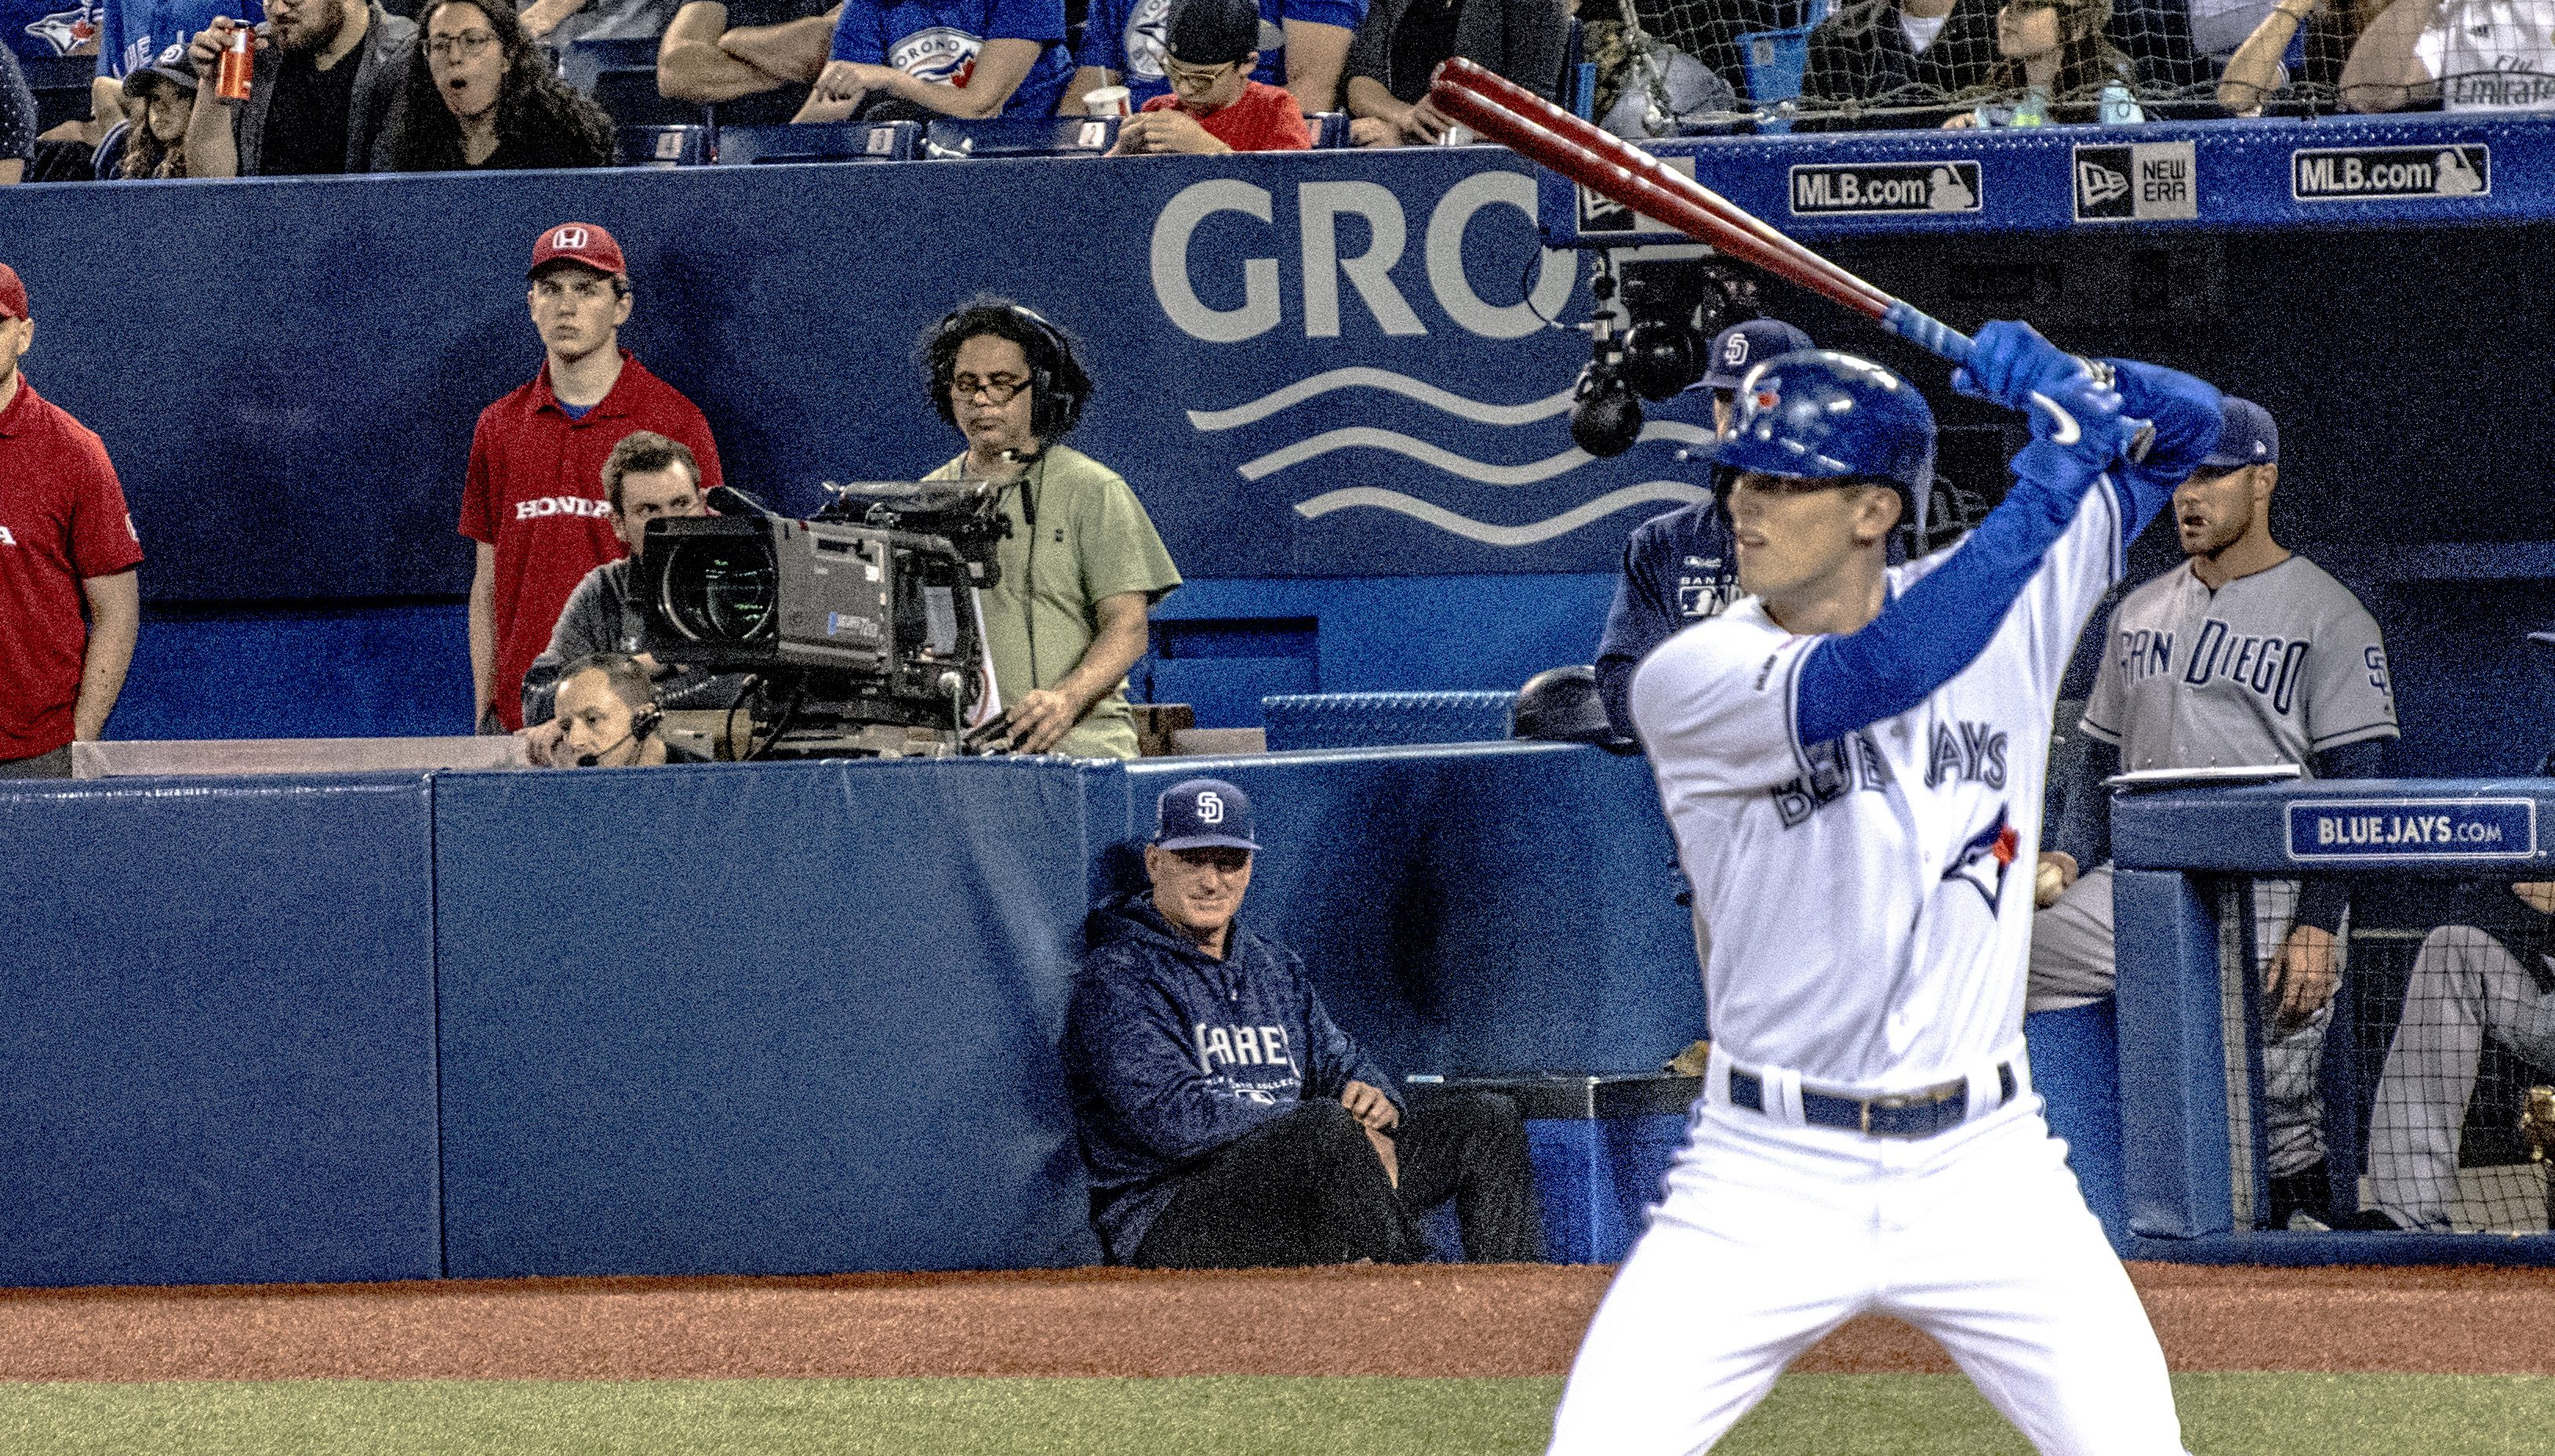 Cavan Biggio- Credit: DaveMe Images